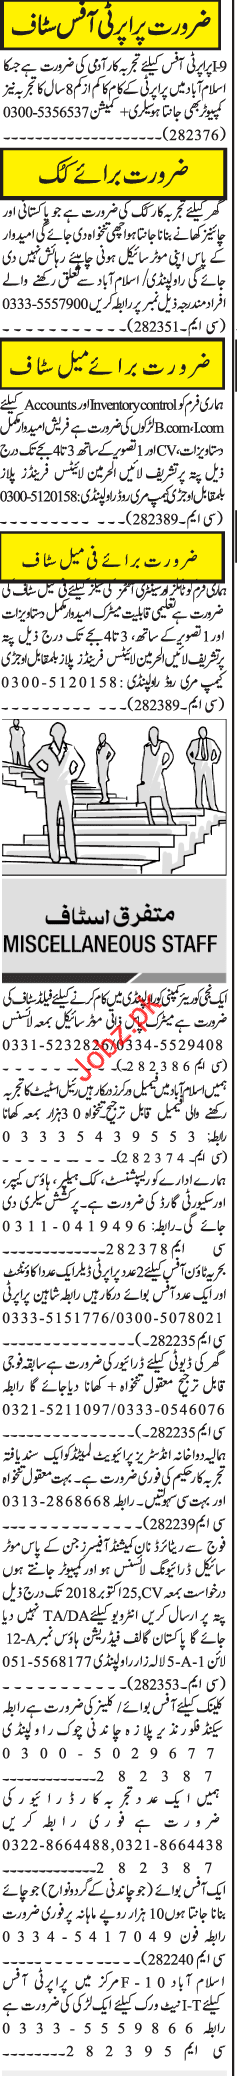 Property Office Staff Jobs 2018 in Islamabad